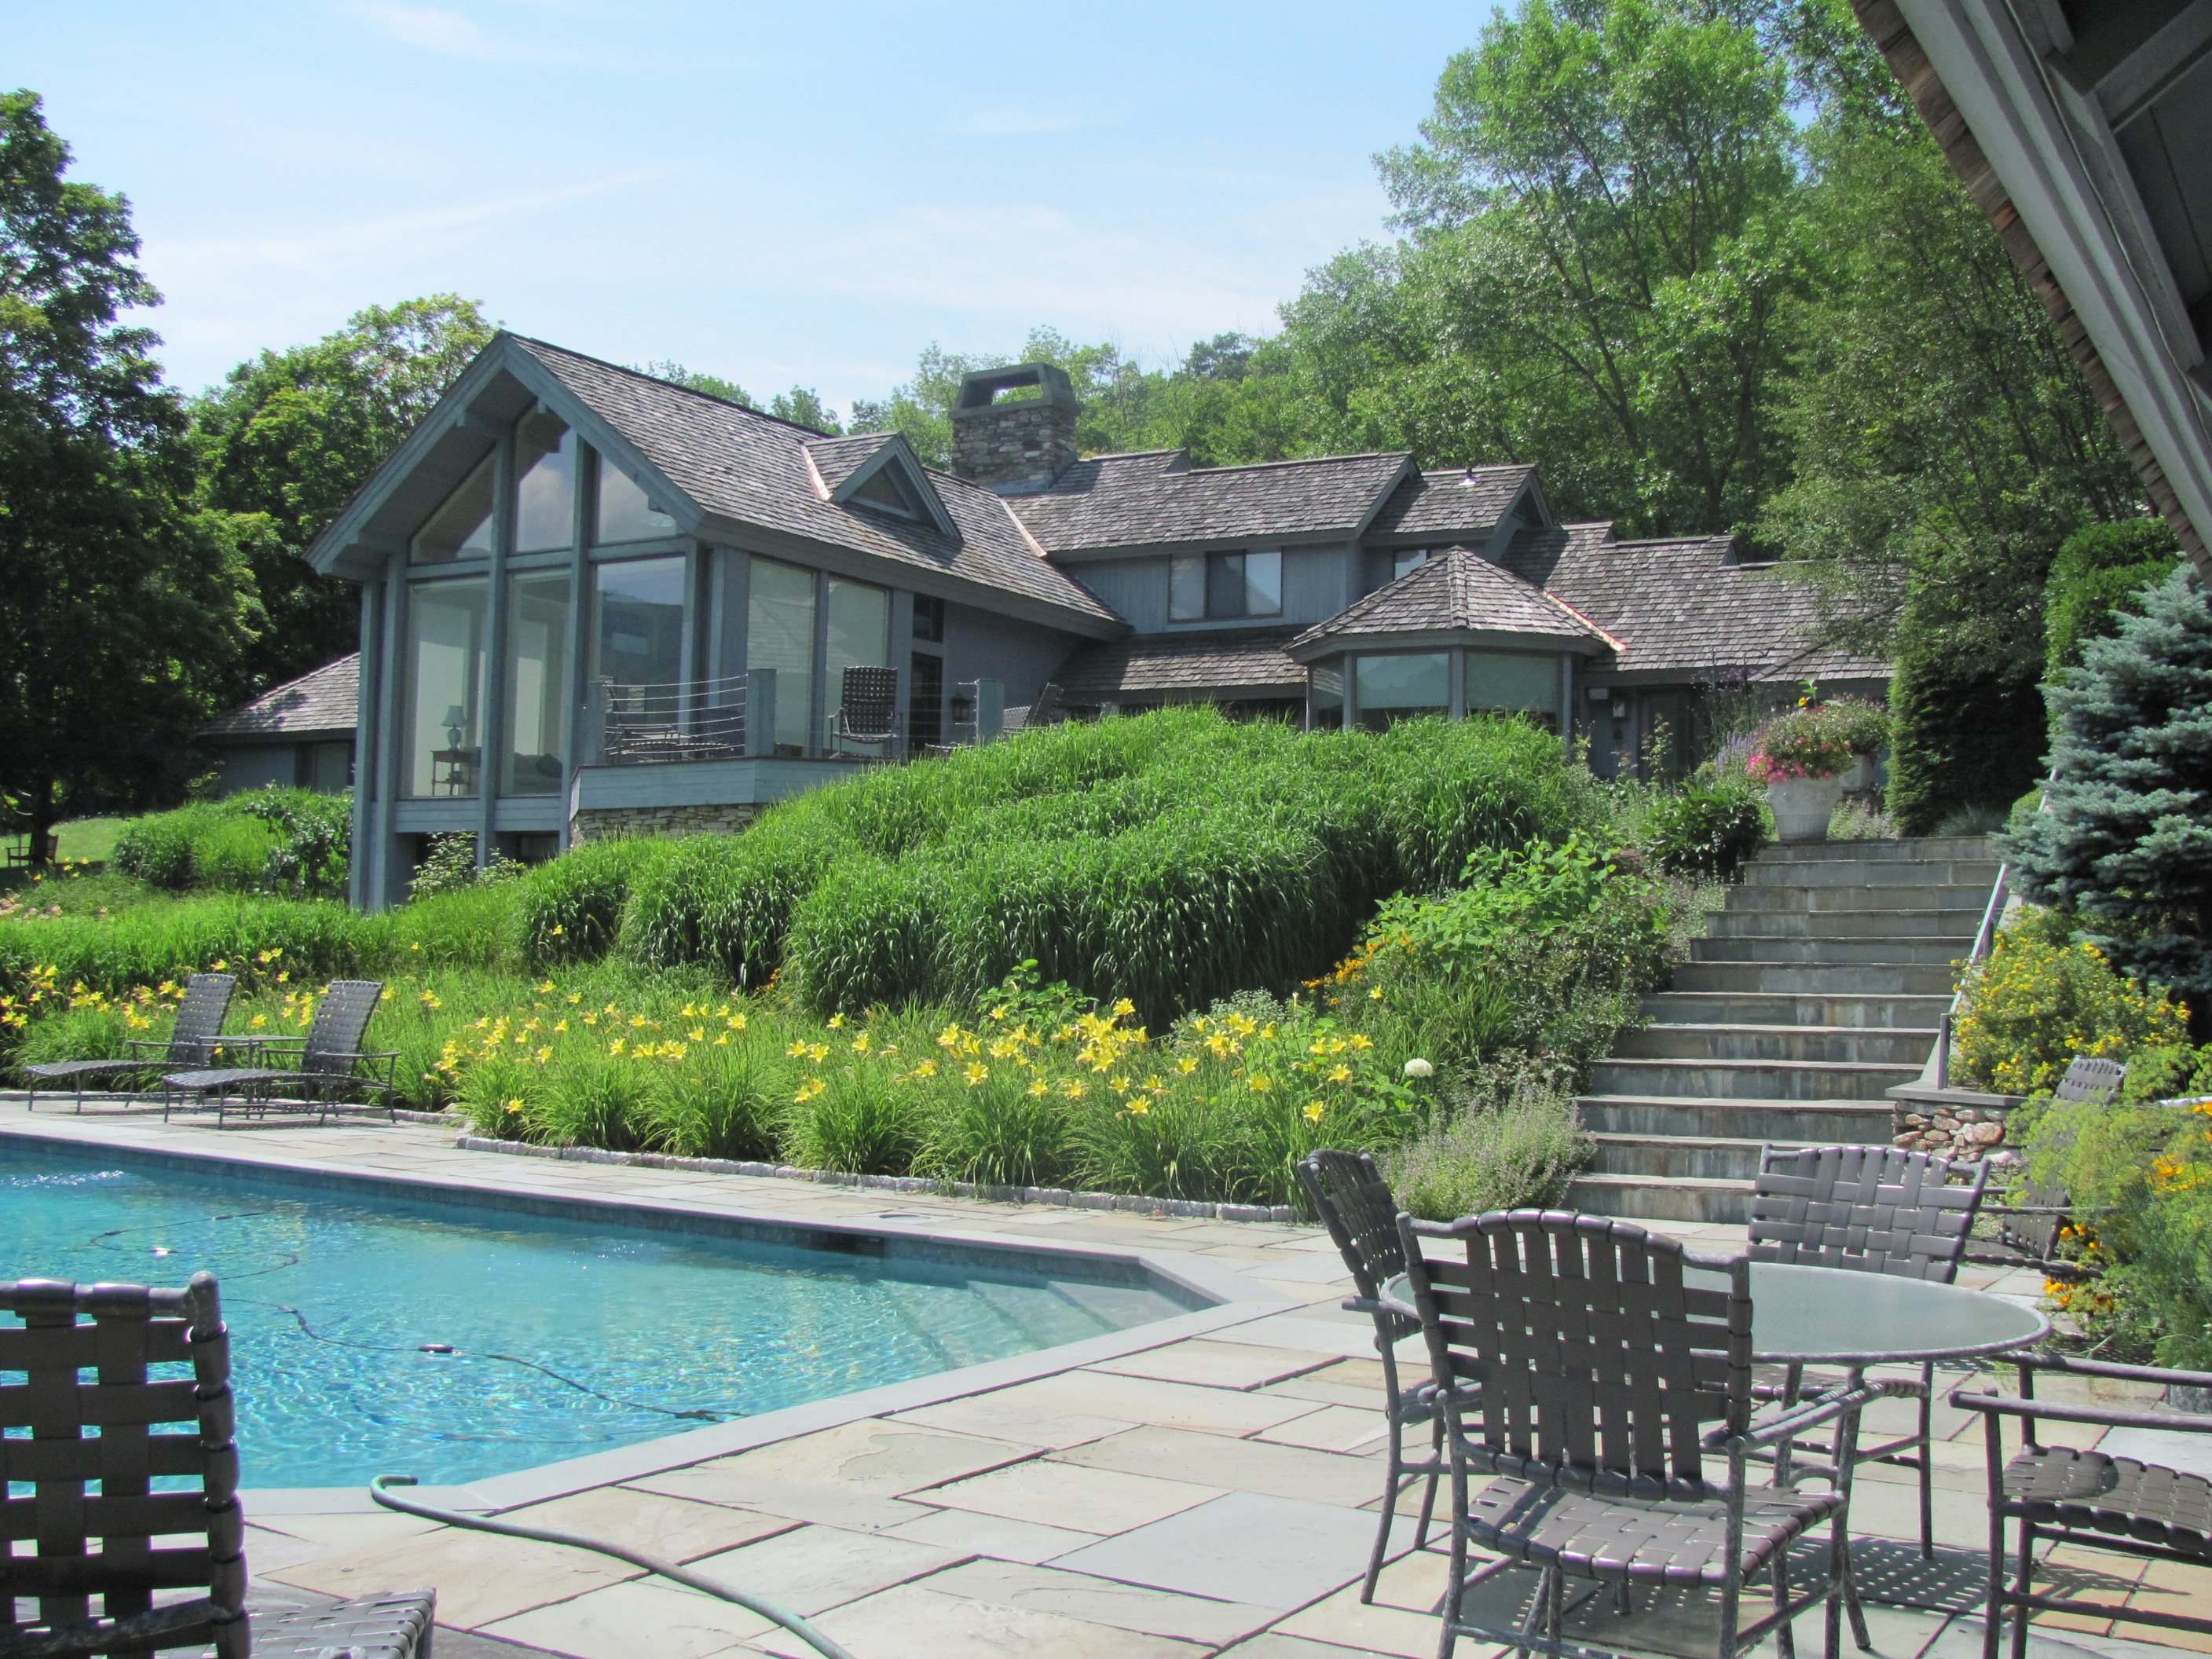 Single Family Home for Sale at 1674 Upper Hollow Road, Dorset 1674 Upper Hollow Rd Dorset, Vermont, 05251 United States